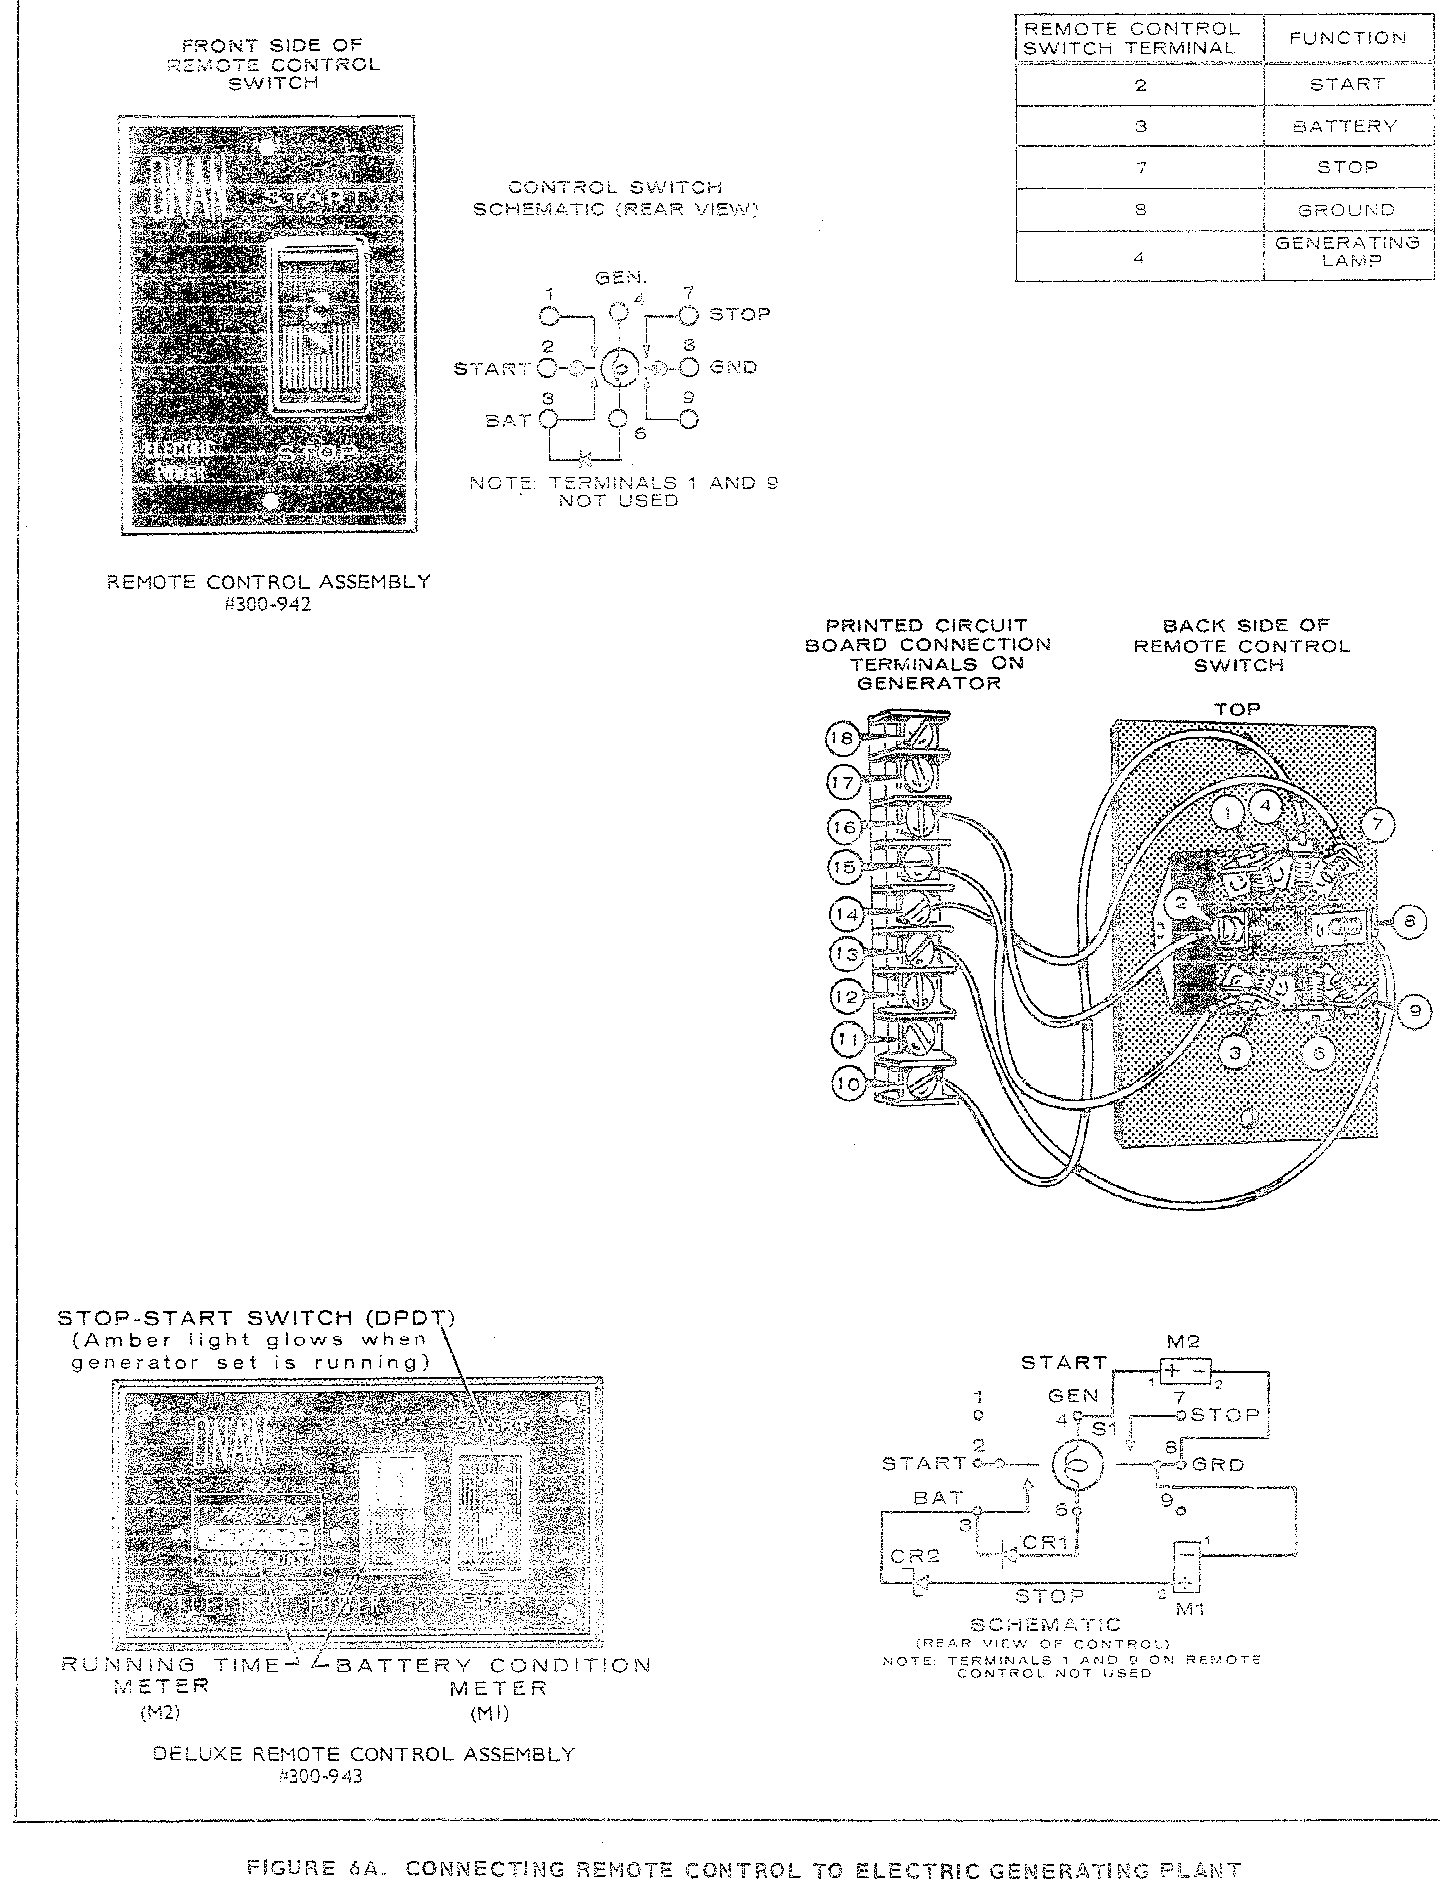 onan generator remote start stop switch wiring diagram